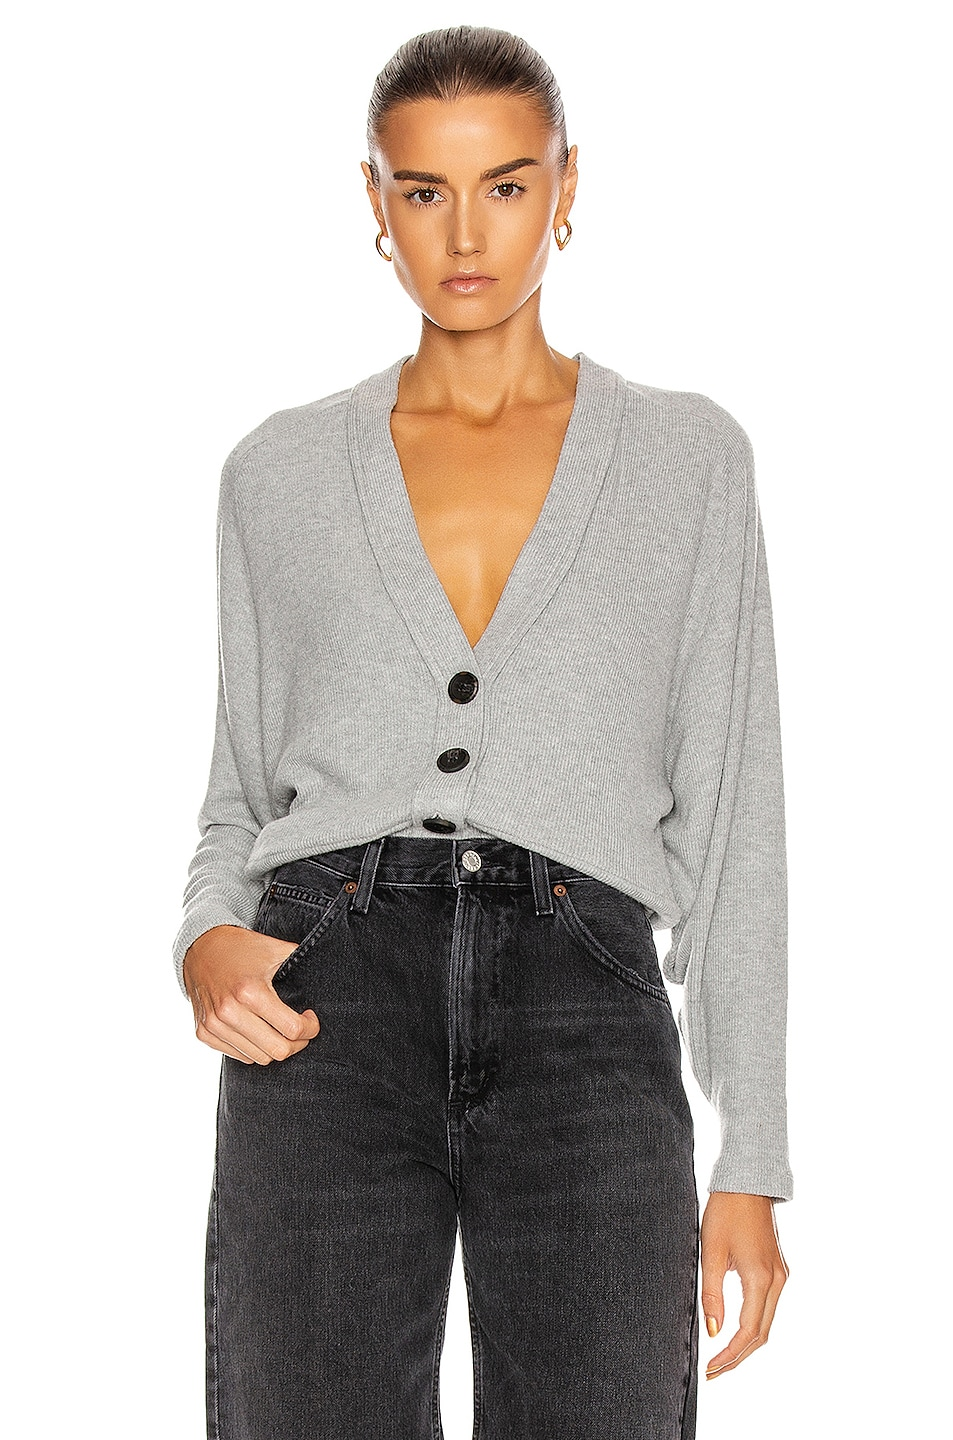 Image 1 of Enza Costa for FWRD Sweater Knit Dropped Cardigan in Heather Grey